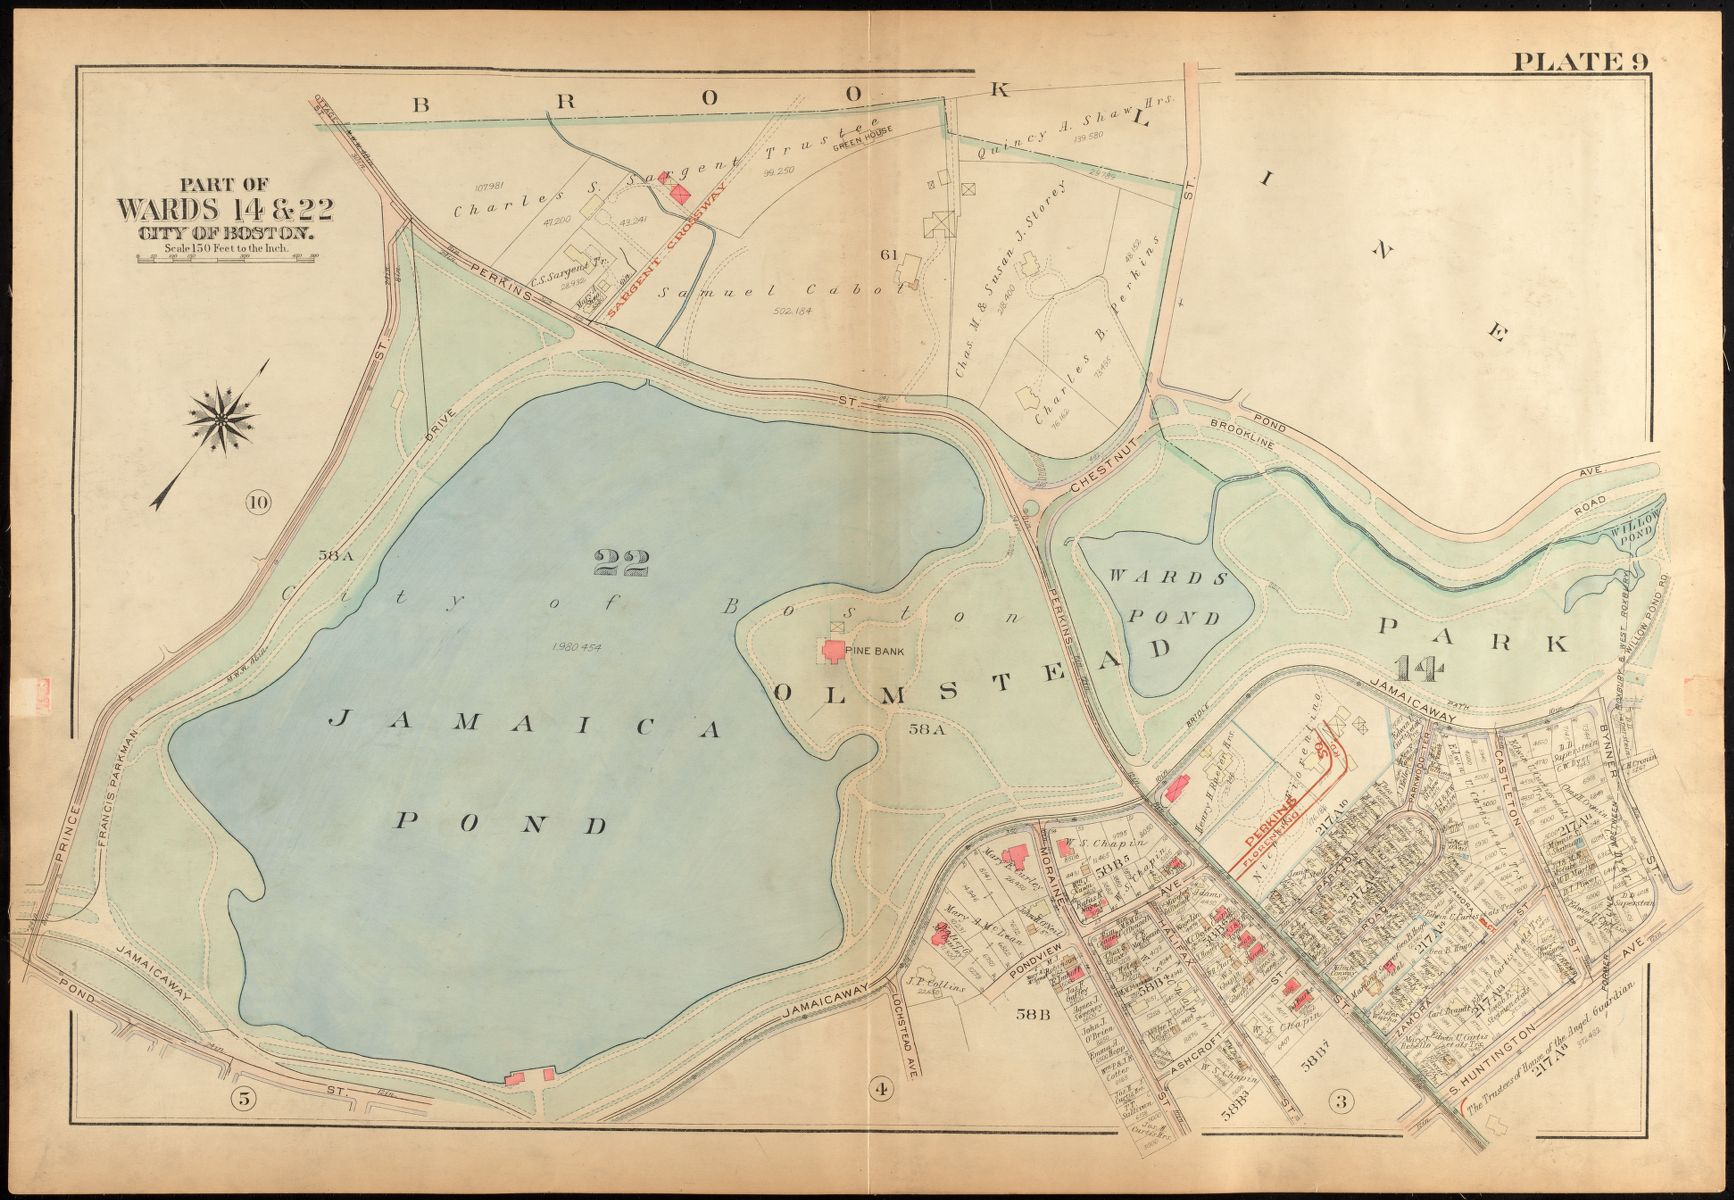 Highlights from Jamaica Plain By Map